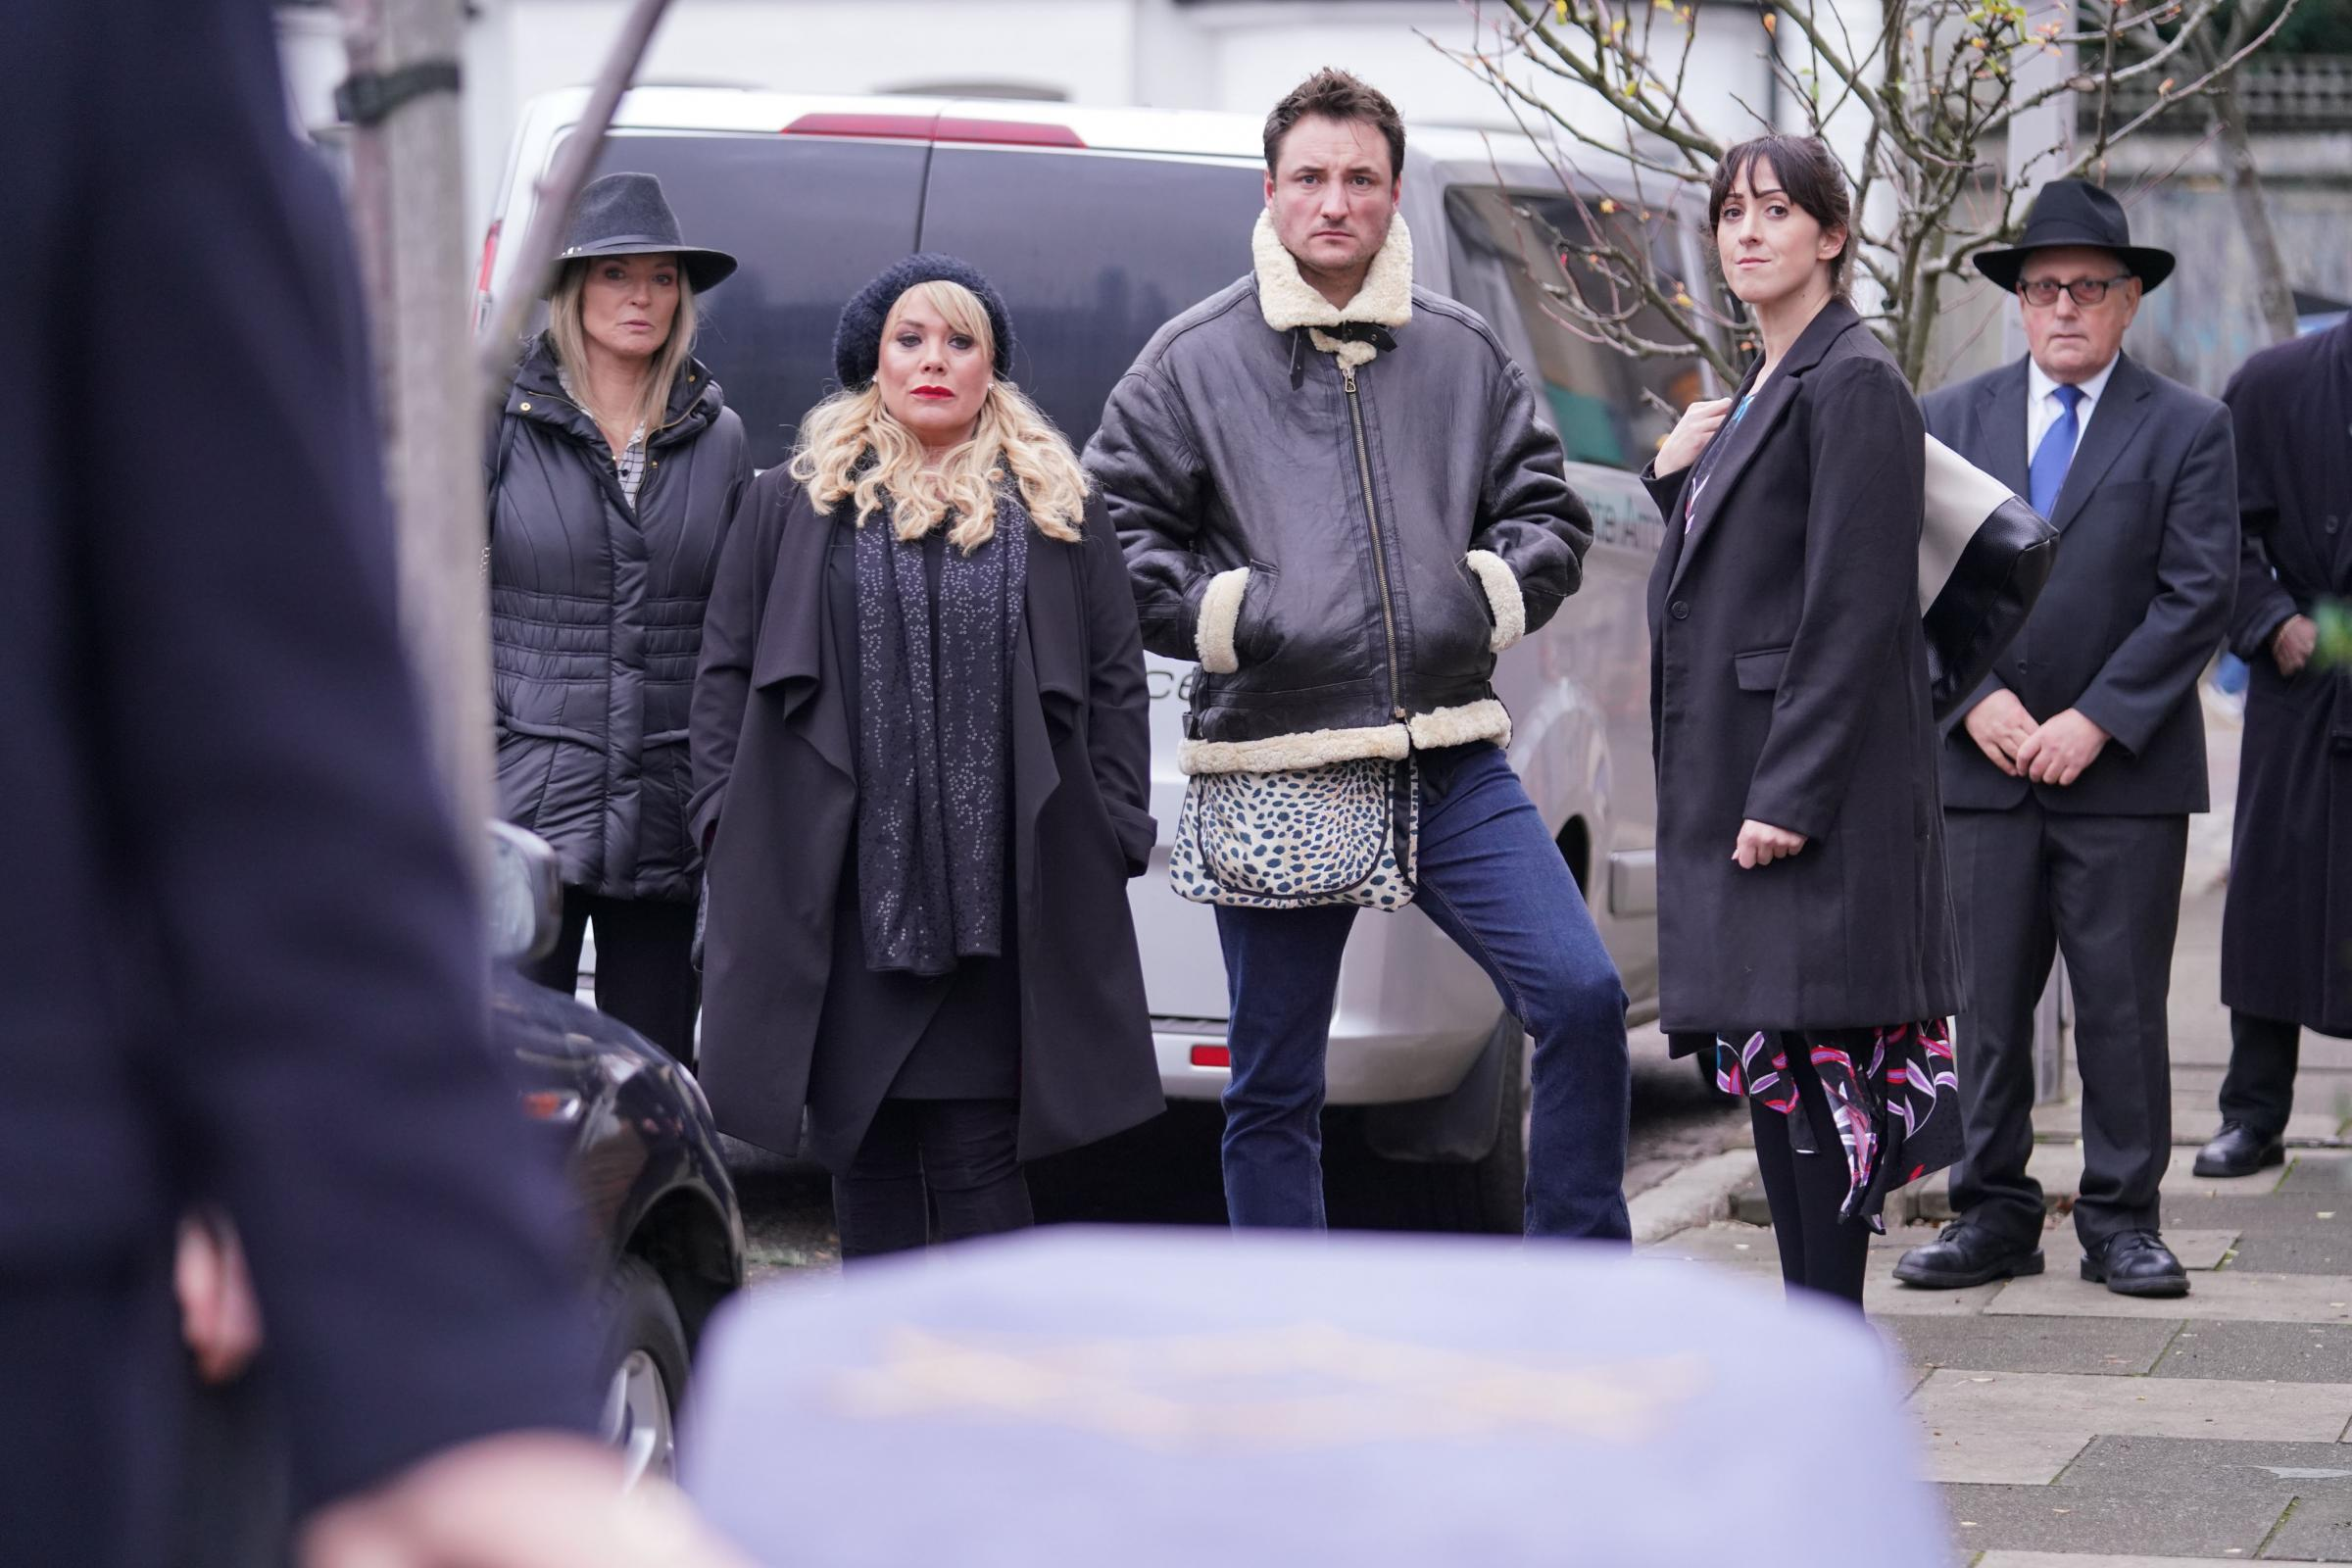 EastEnders characters gather for the funeral of Dr Legg